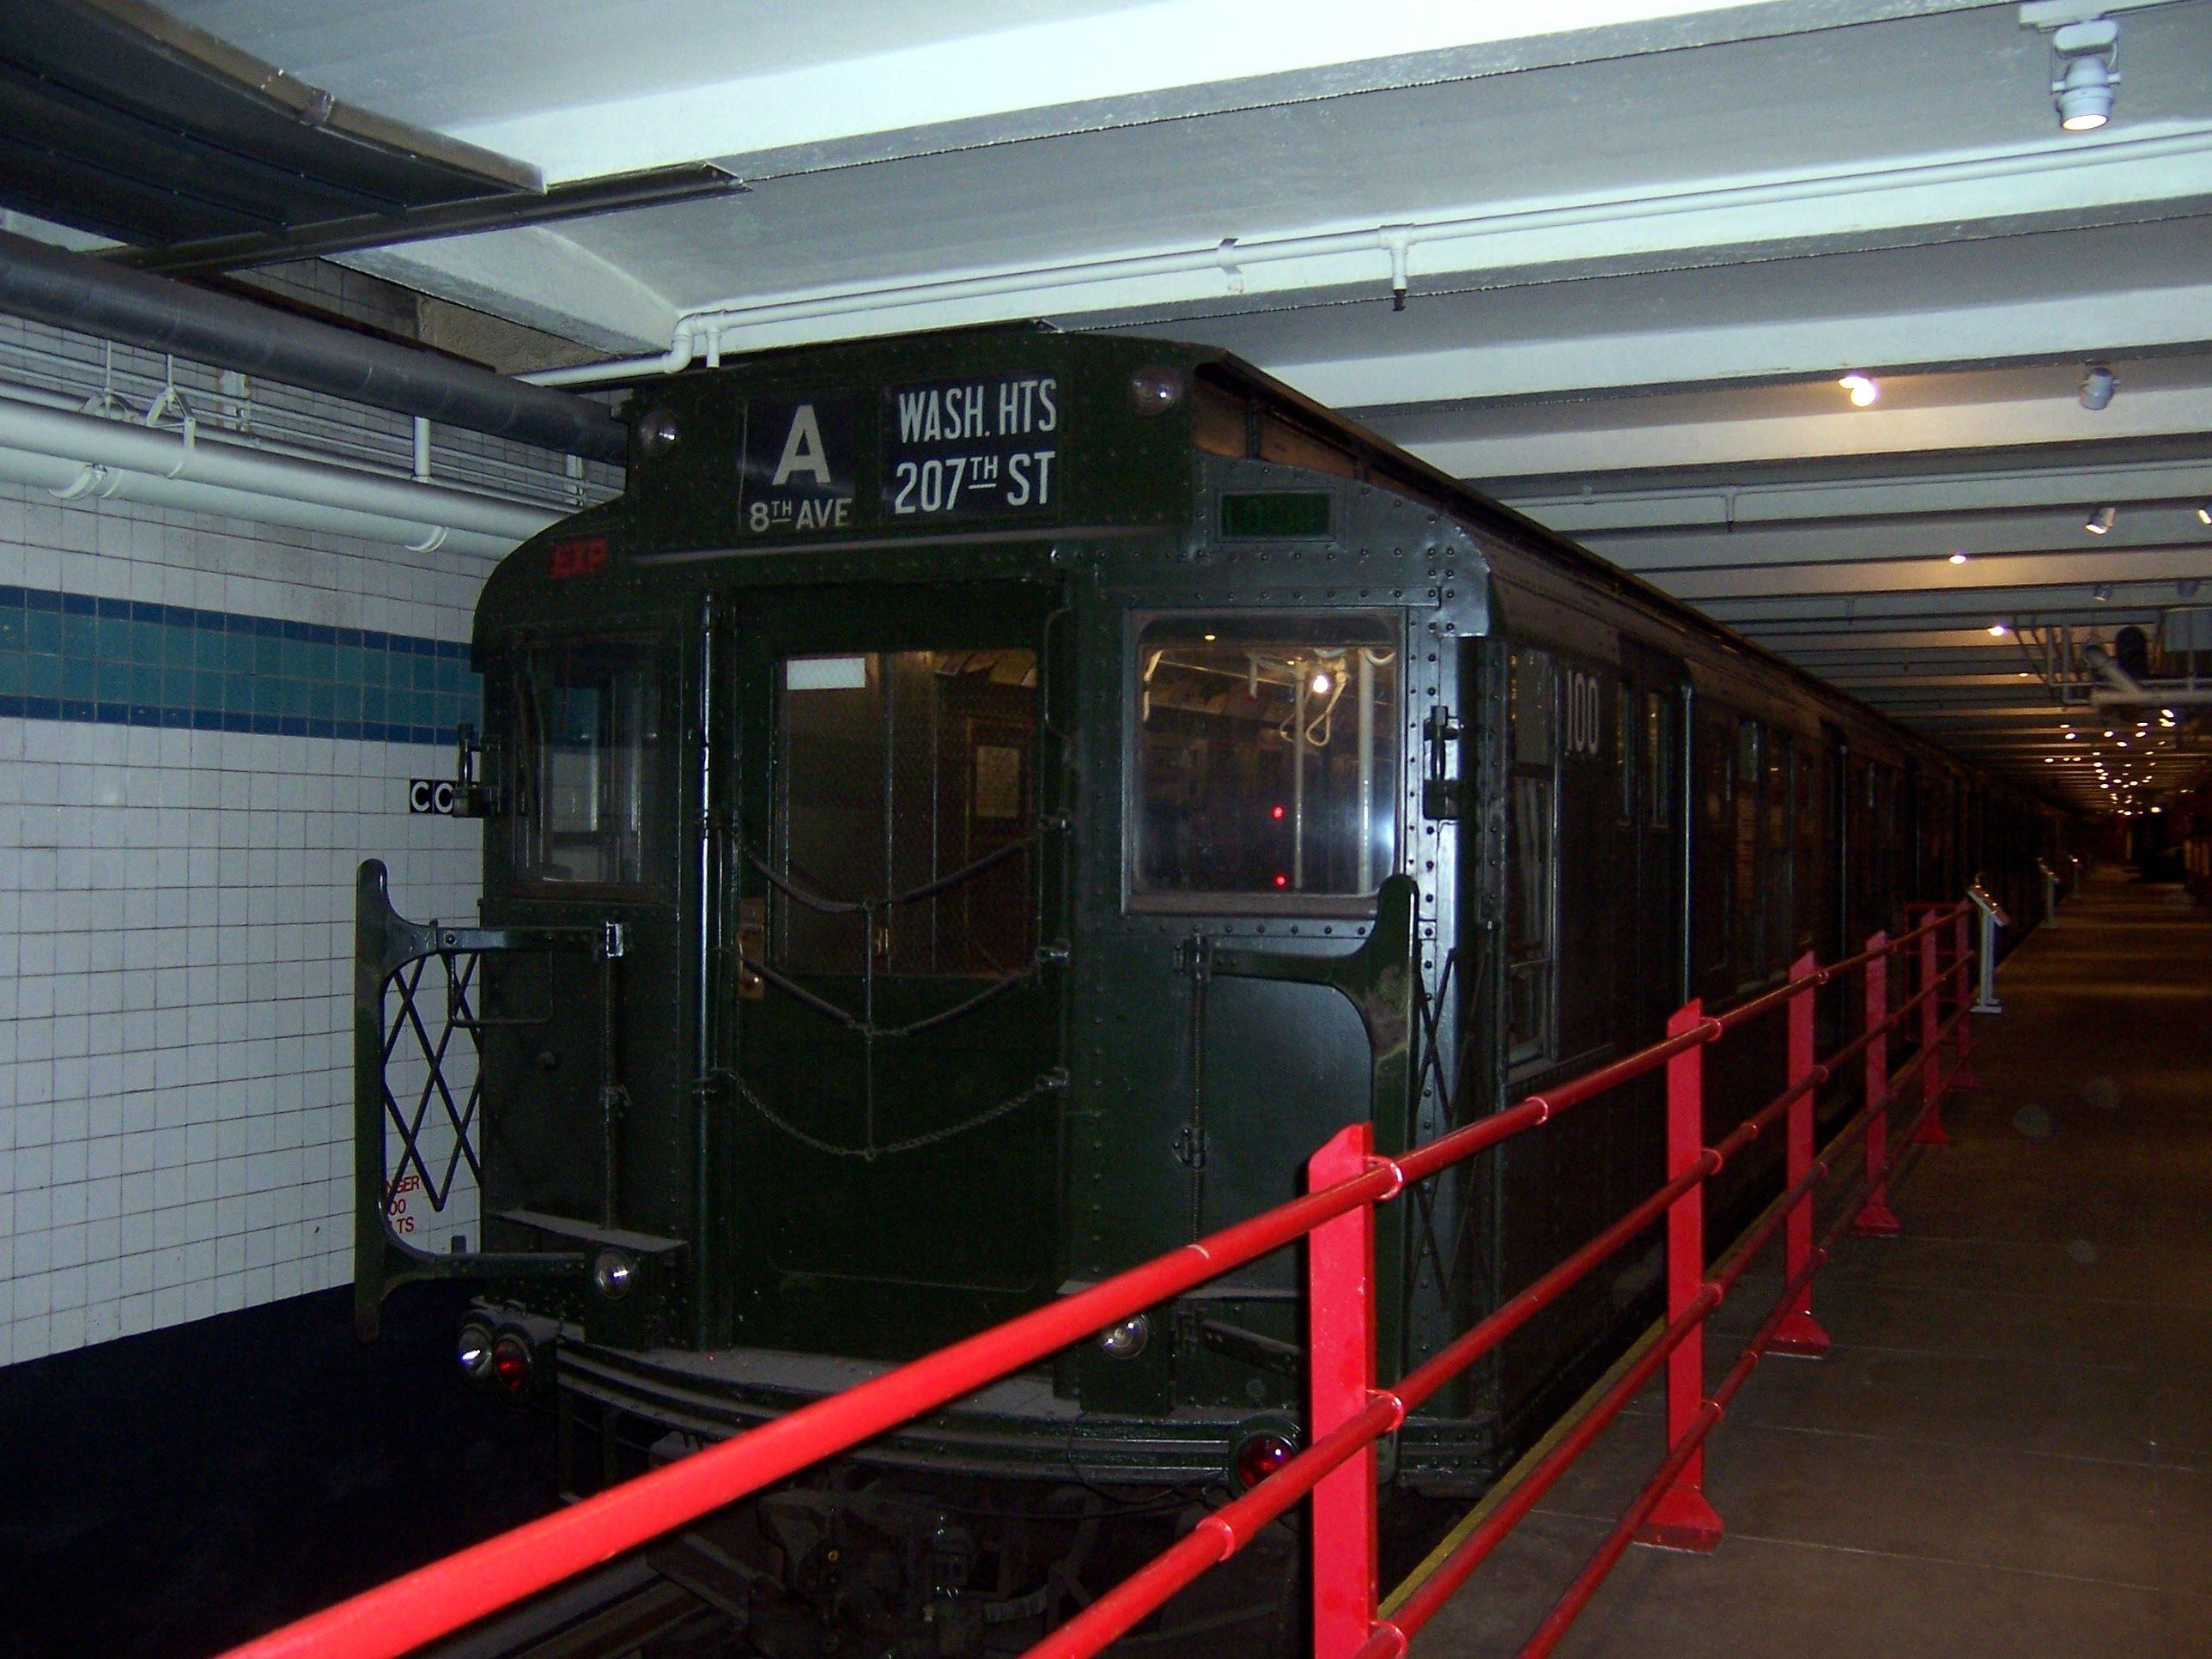 R4 New York City Subway Car Wikipedia The Free Encyclopedia Subway York City City